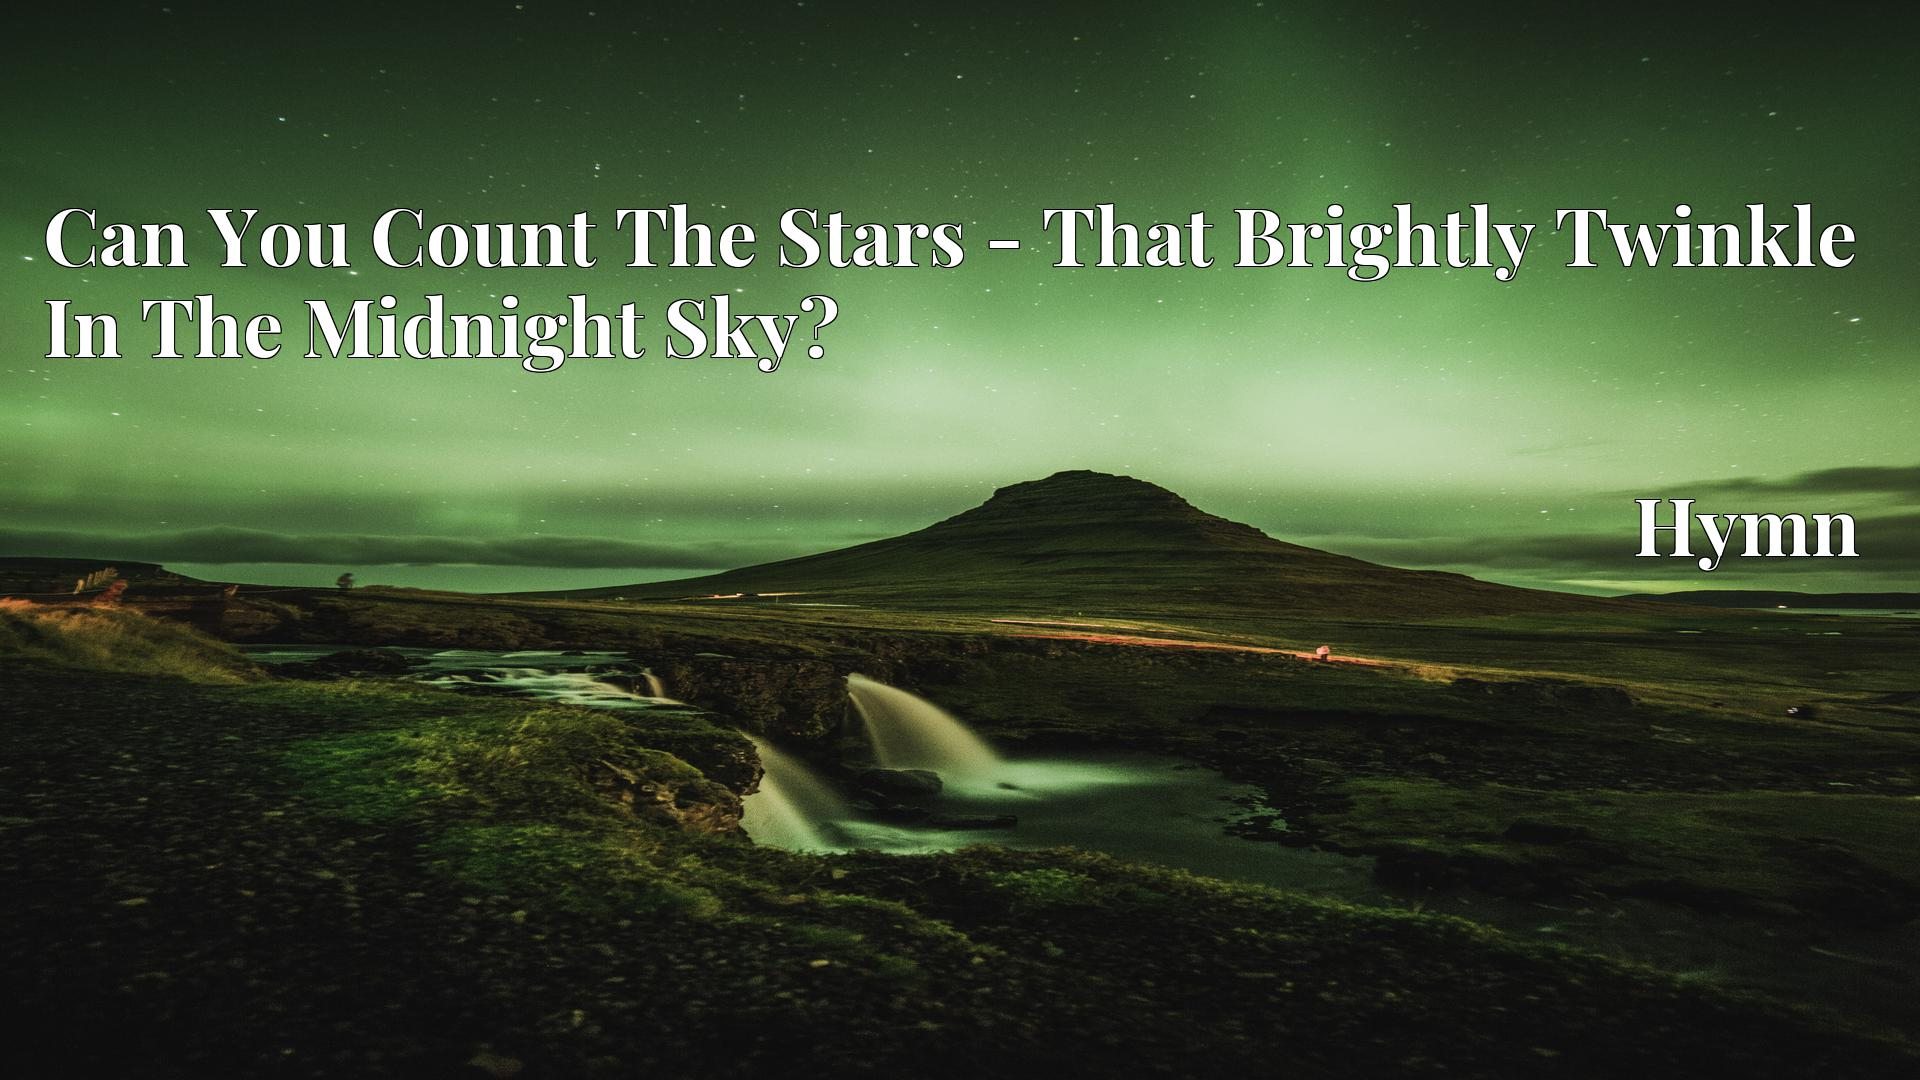 Can You Count The Stars - That Brightly Twinkle In The Midnight Sky? Hymn